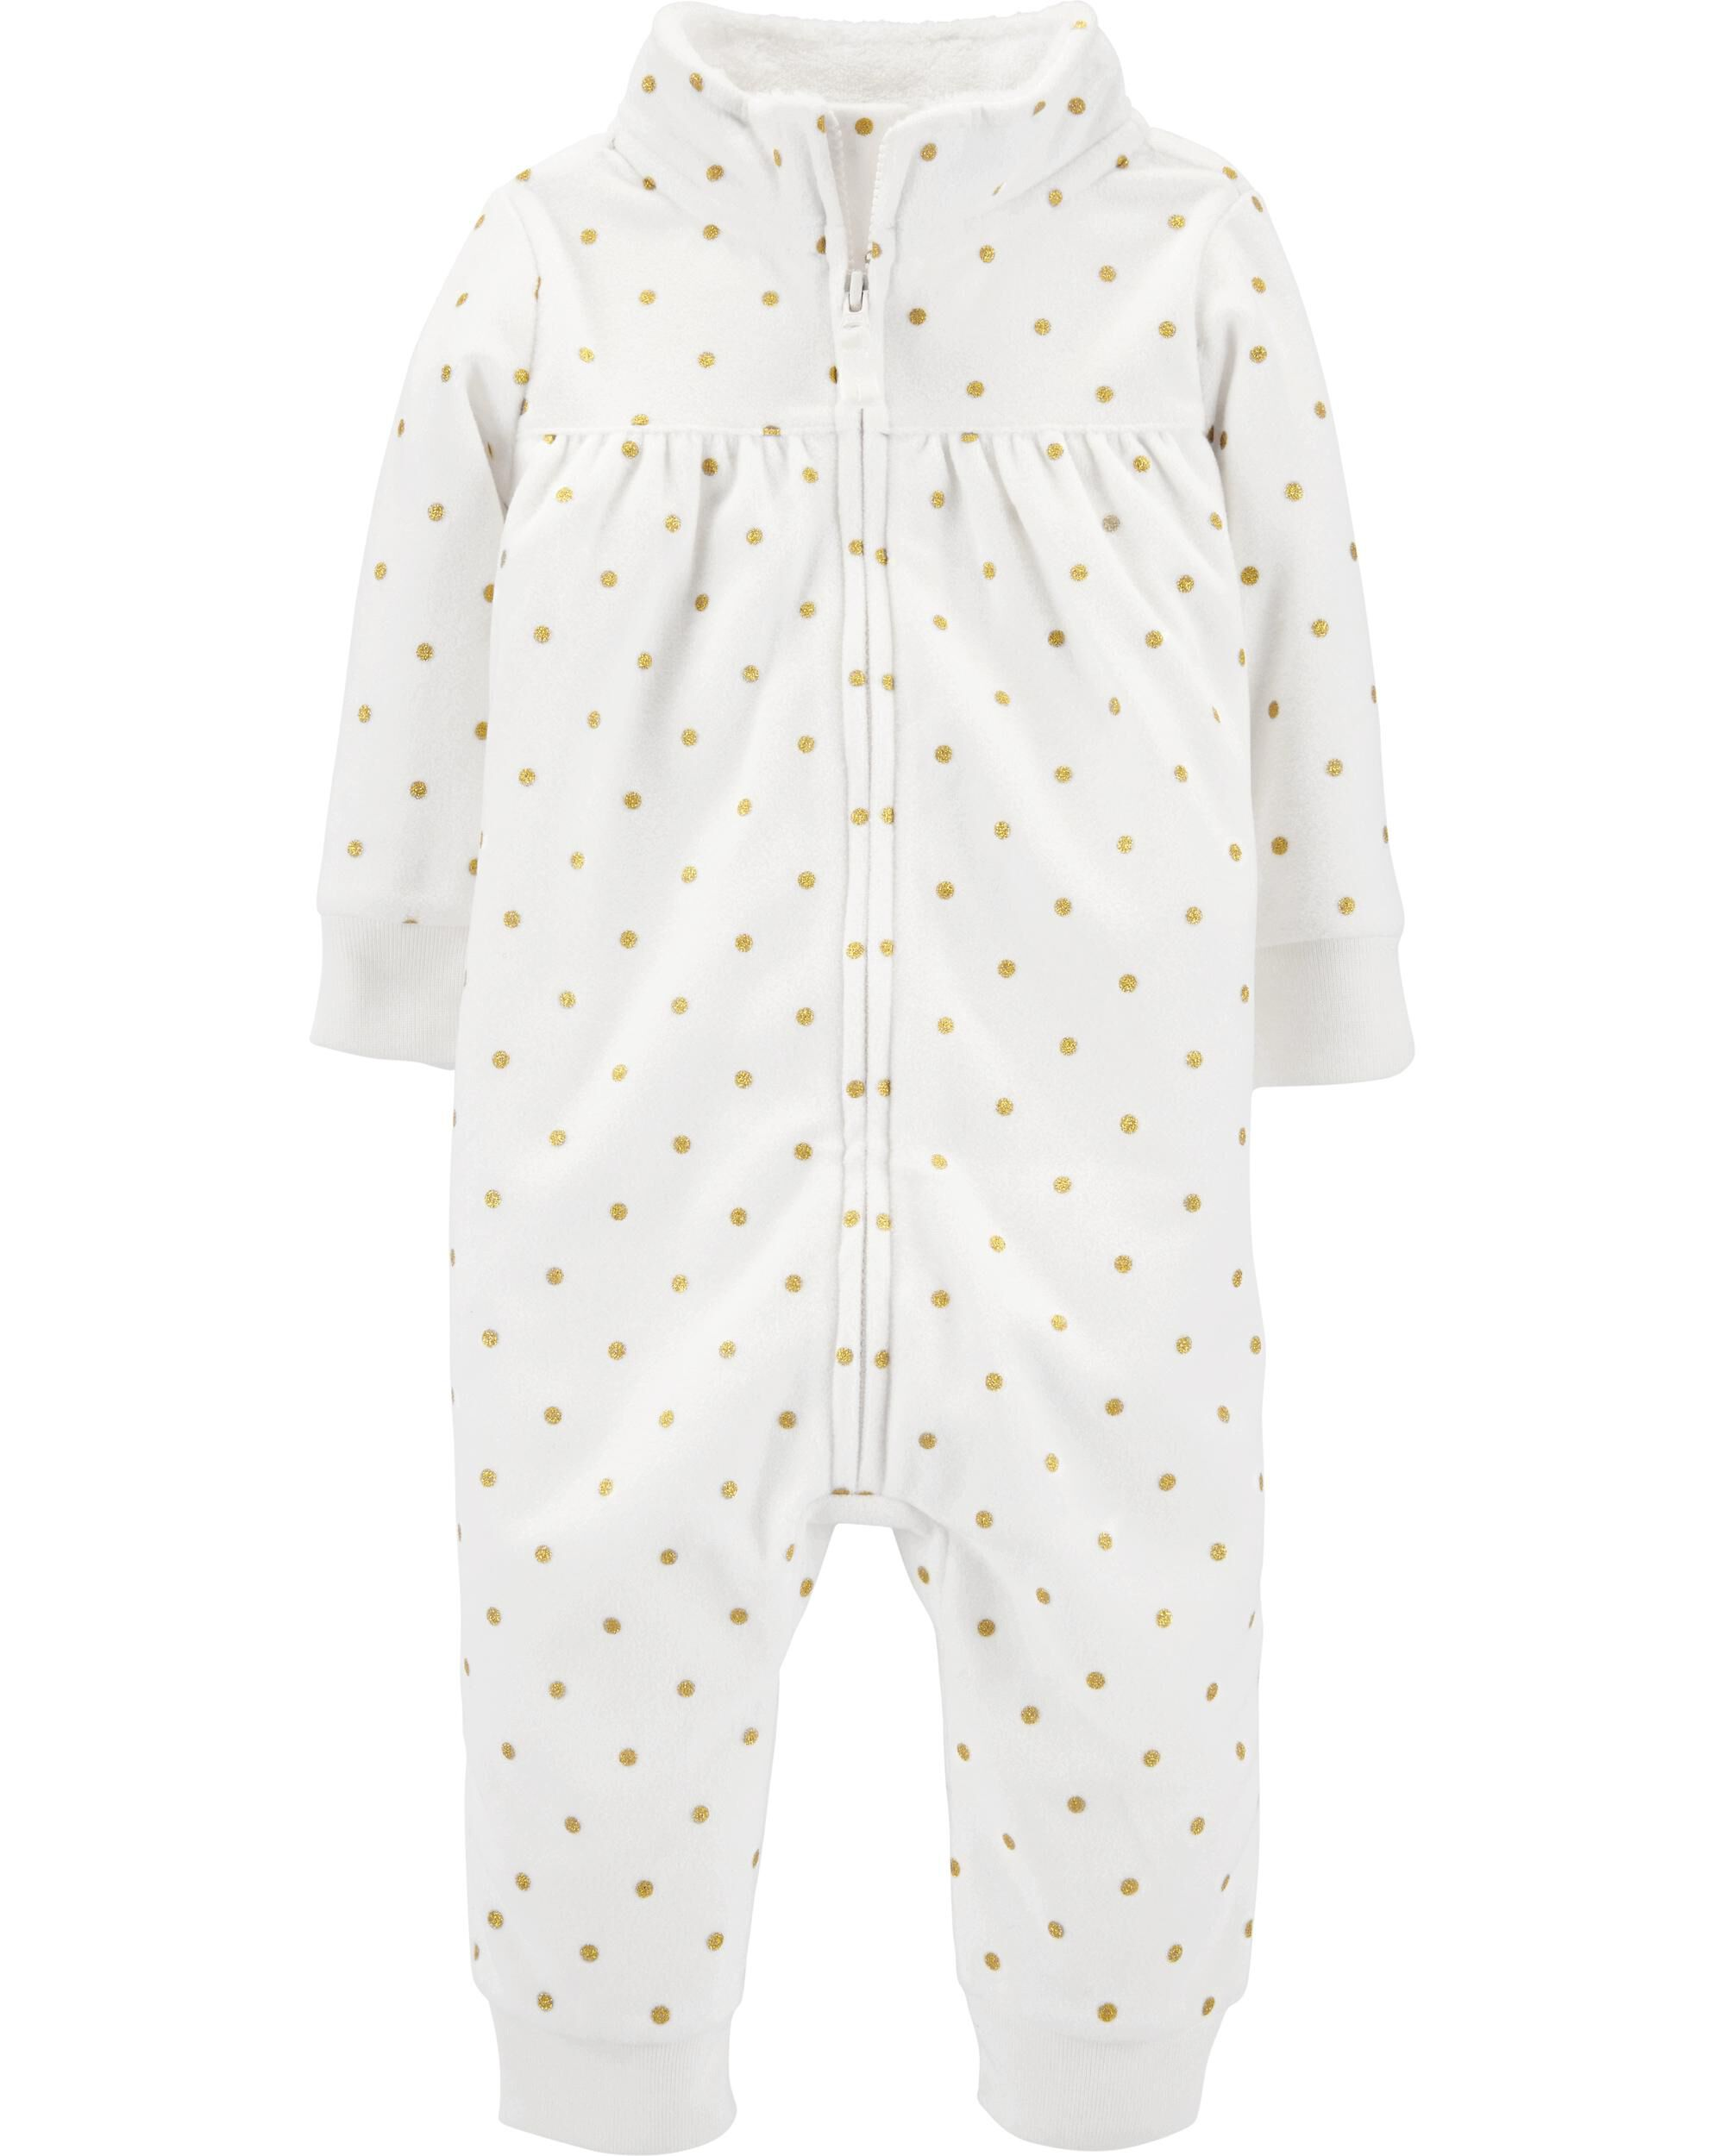 *CLEARANCE* Zip-Up Polka Dot Fleece Jumpsuit